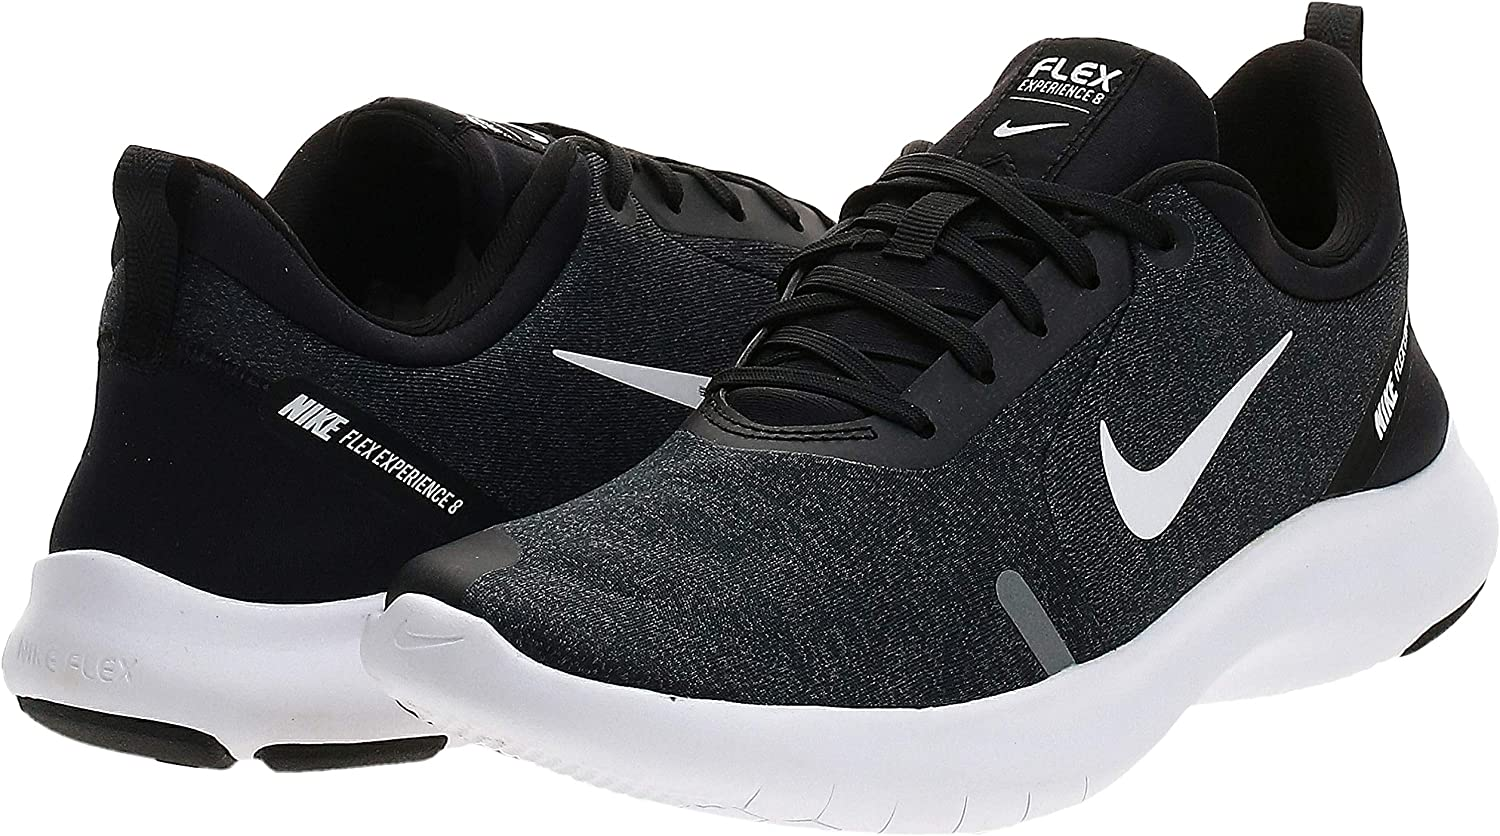 Nike Wmns Flex Experience RN 8, Zapatillas de Running para Asfalto para Mujer, Multicolor (Black/White-Cool Grey-Reflect Silver 013_Black/White Grey), 41 EU: Amazon.es: Zapatos y complementos